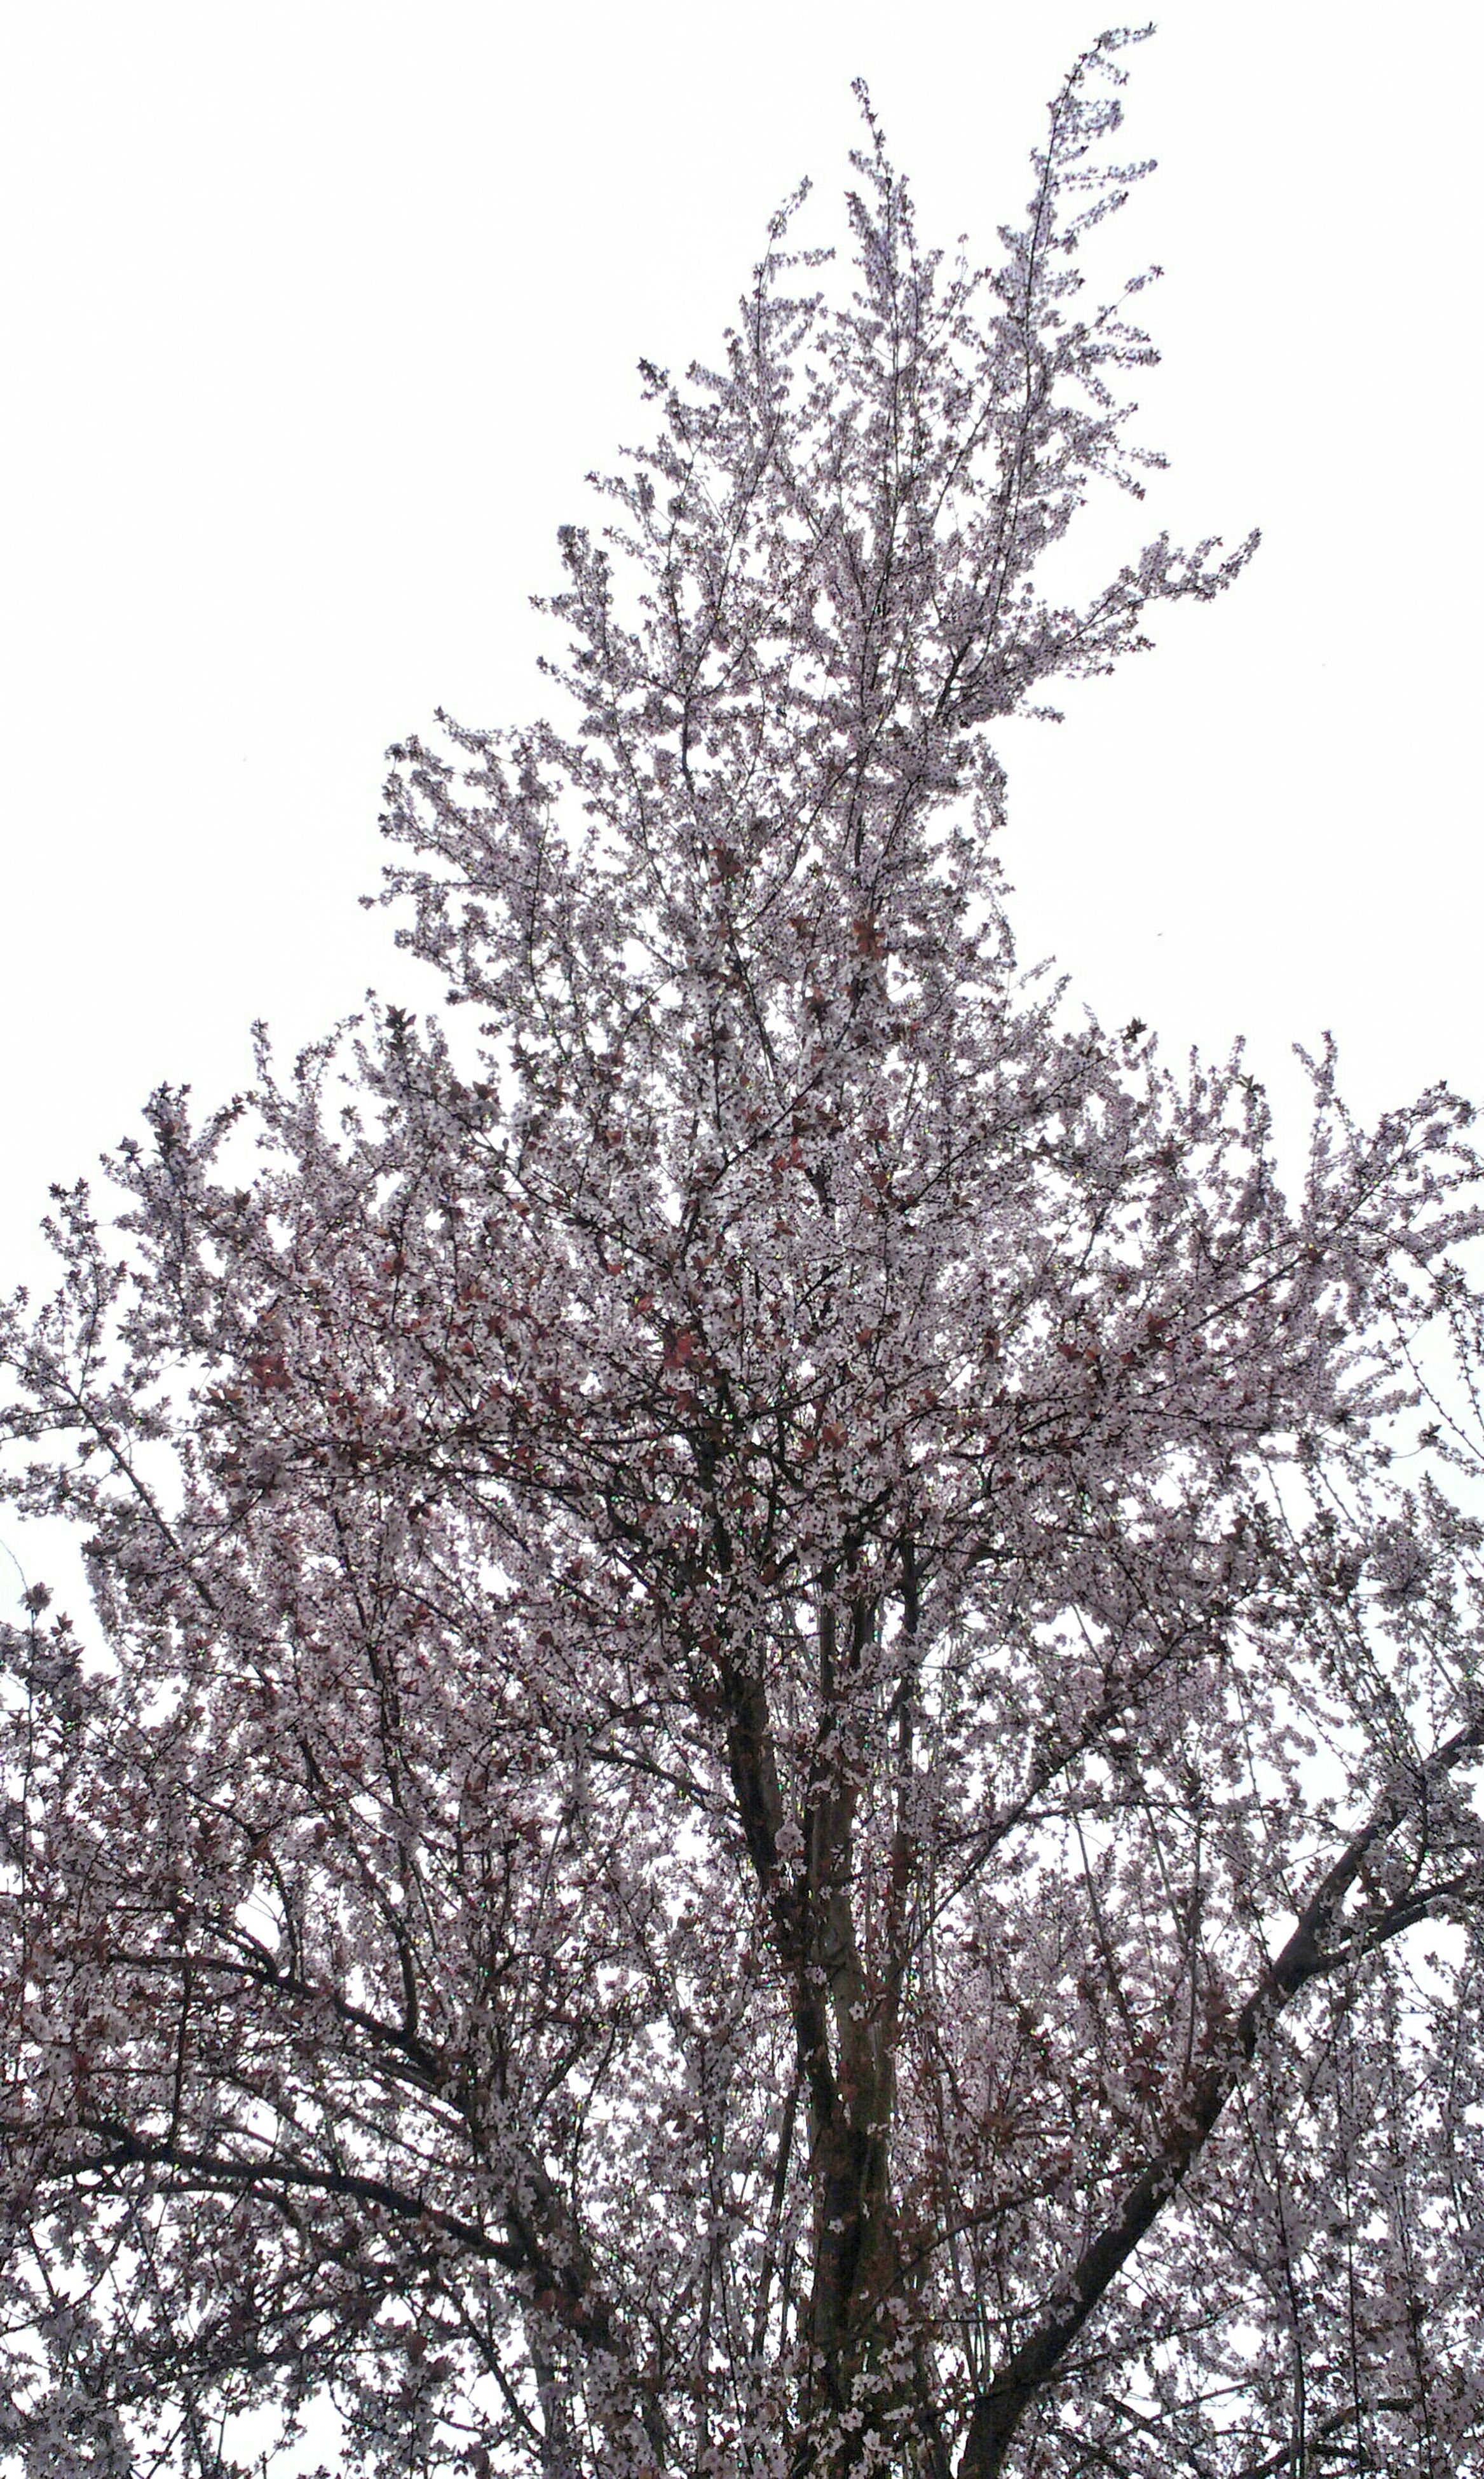 low angle view, branch, tree, clear sky, growth, nature, beauty in nature, flower, bare tree, sky, day, outdoors, no people, high section, fragility, cherry blossom, cherry tree, blossom, tranquility, freshness